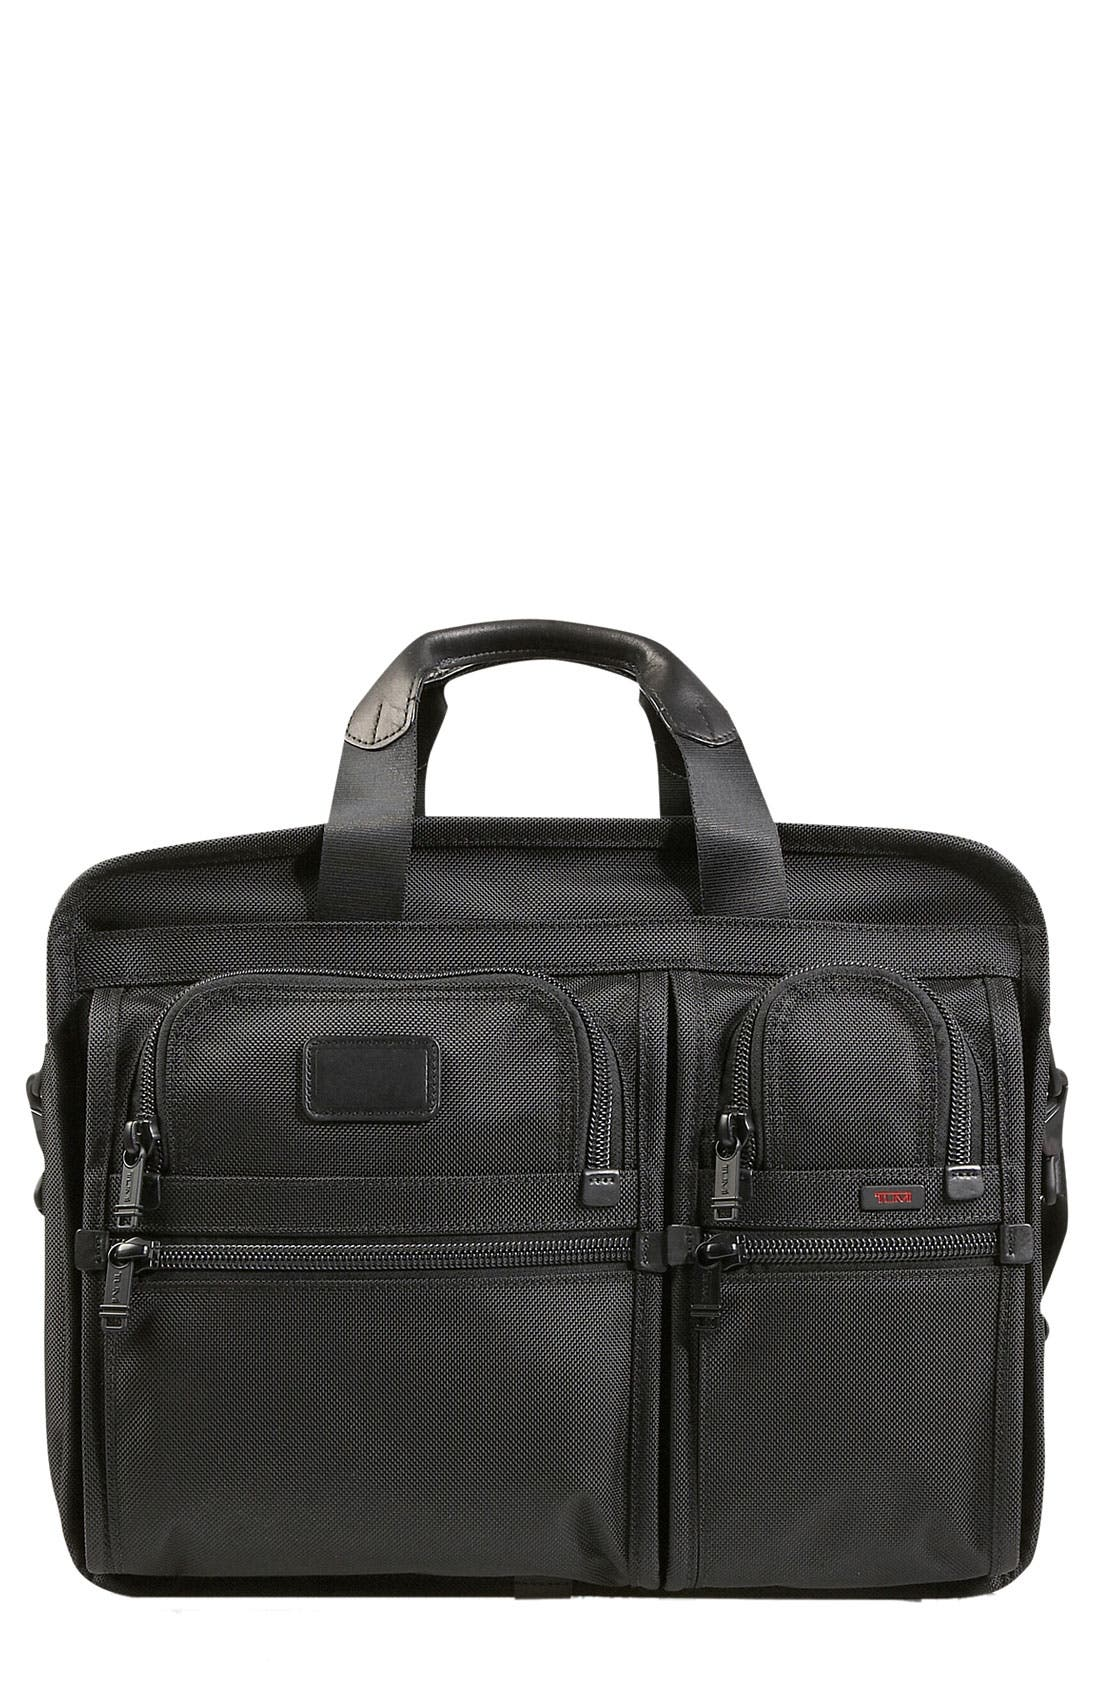 Alternate Image 1 Selected - Tumi 'Large Alpha' Expandable Organizer Computer Briefcase